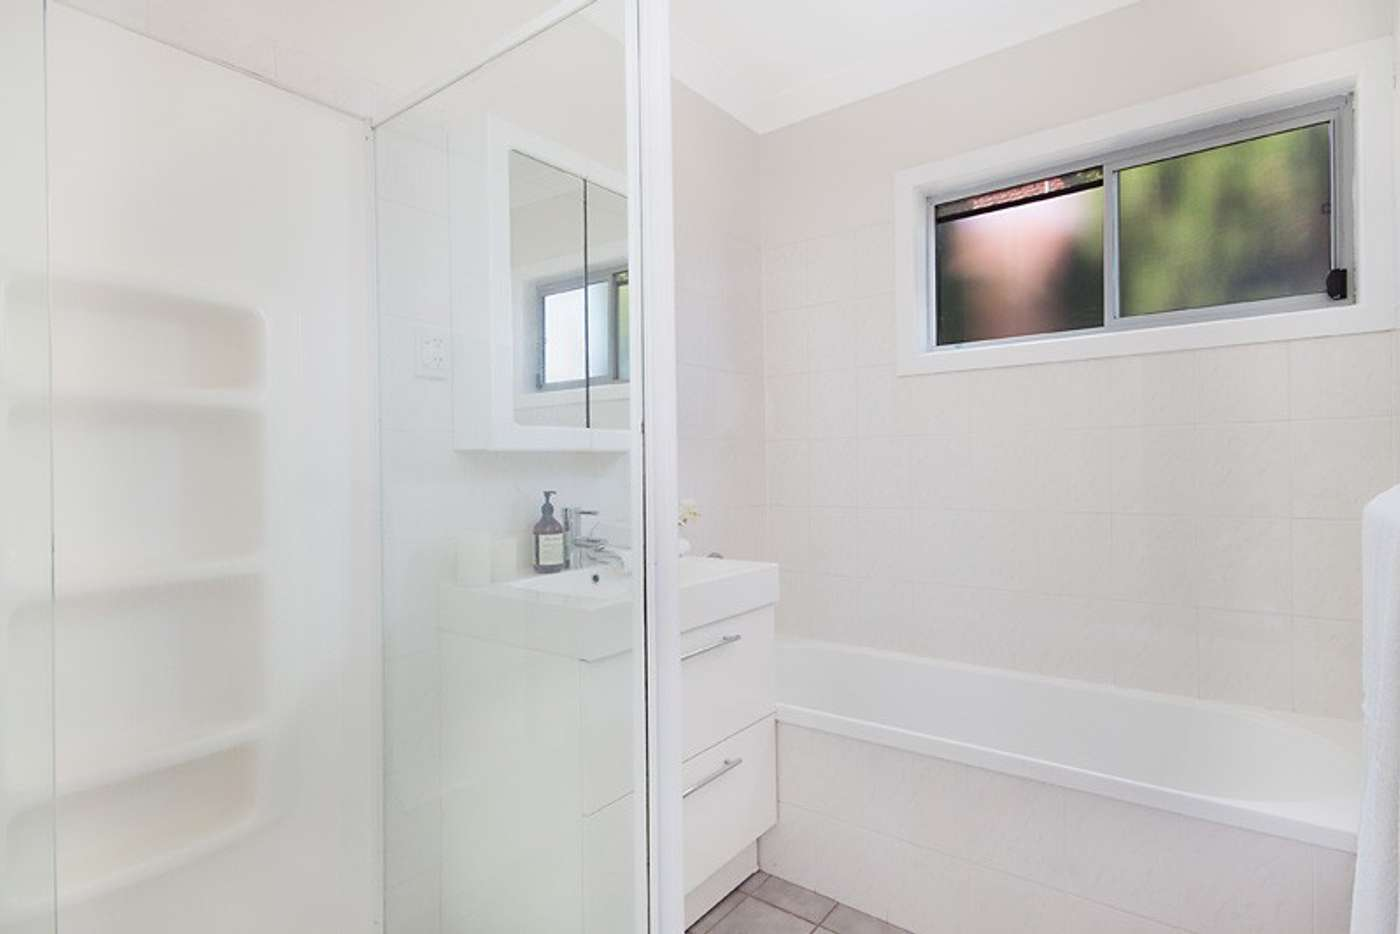 Seventh view of Homely house listing, 12 Traise Street, Waratah NSW 2298